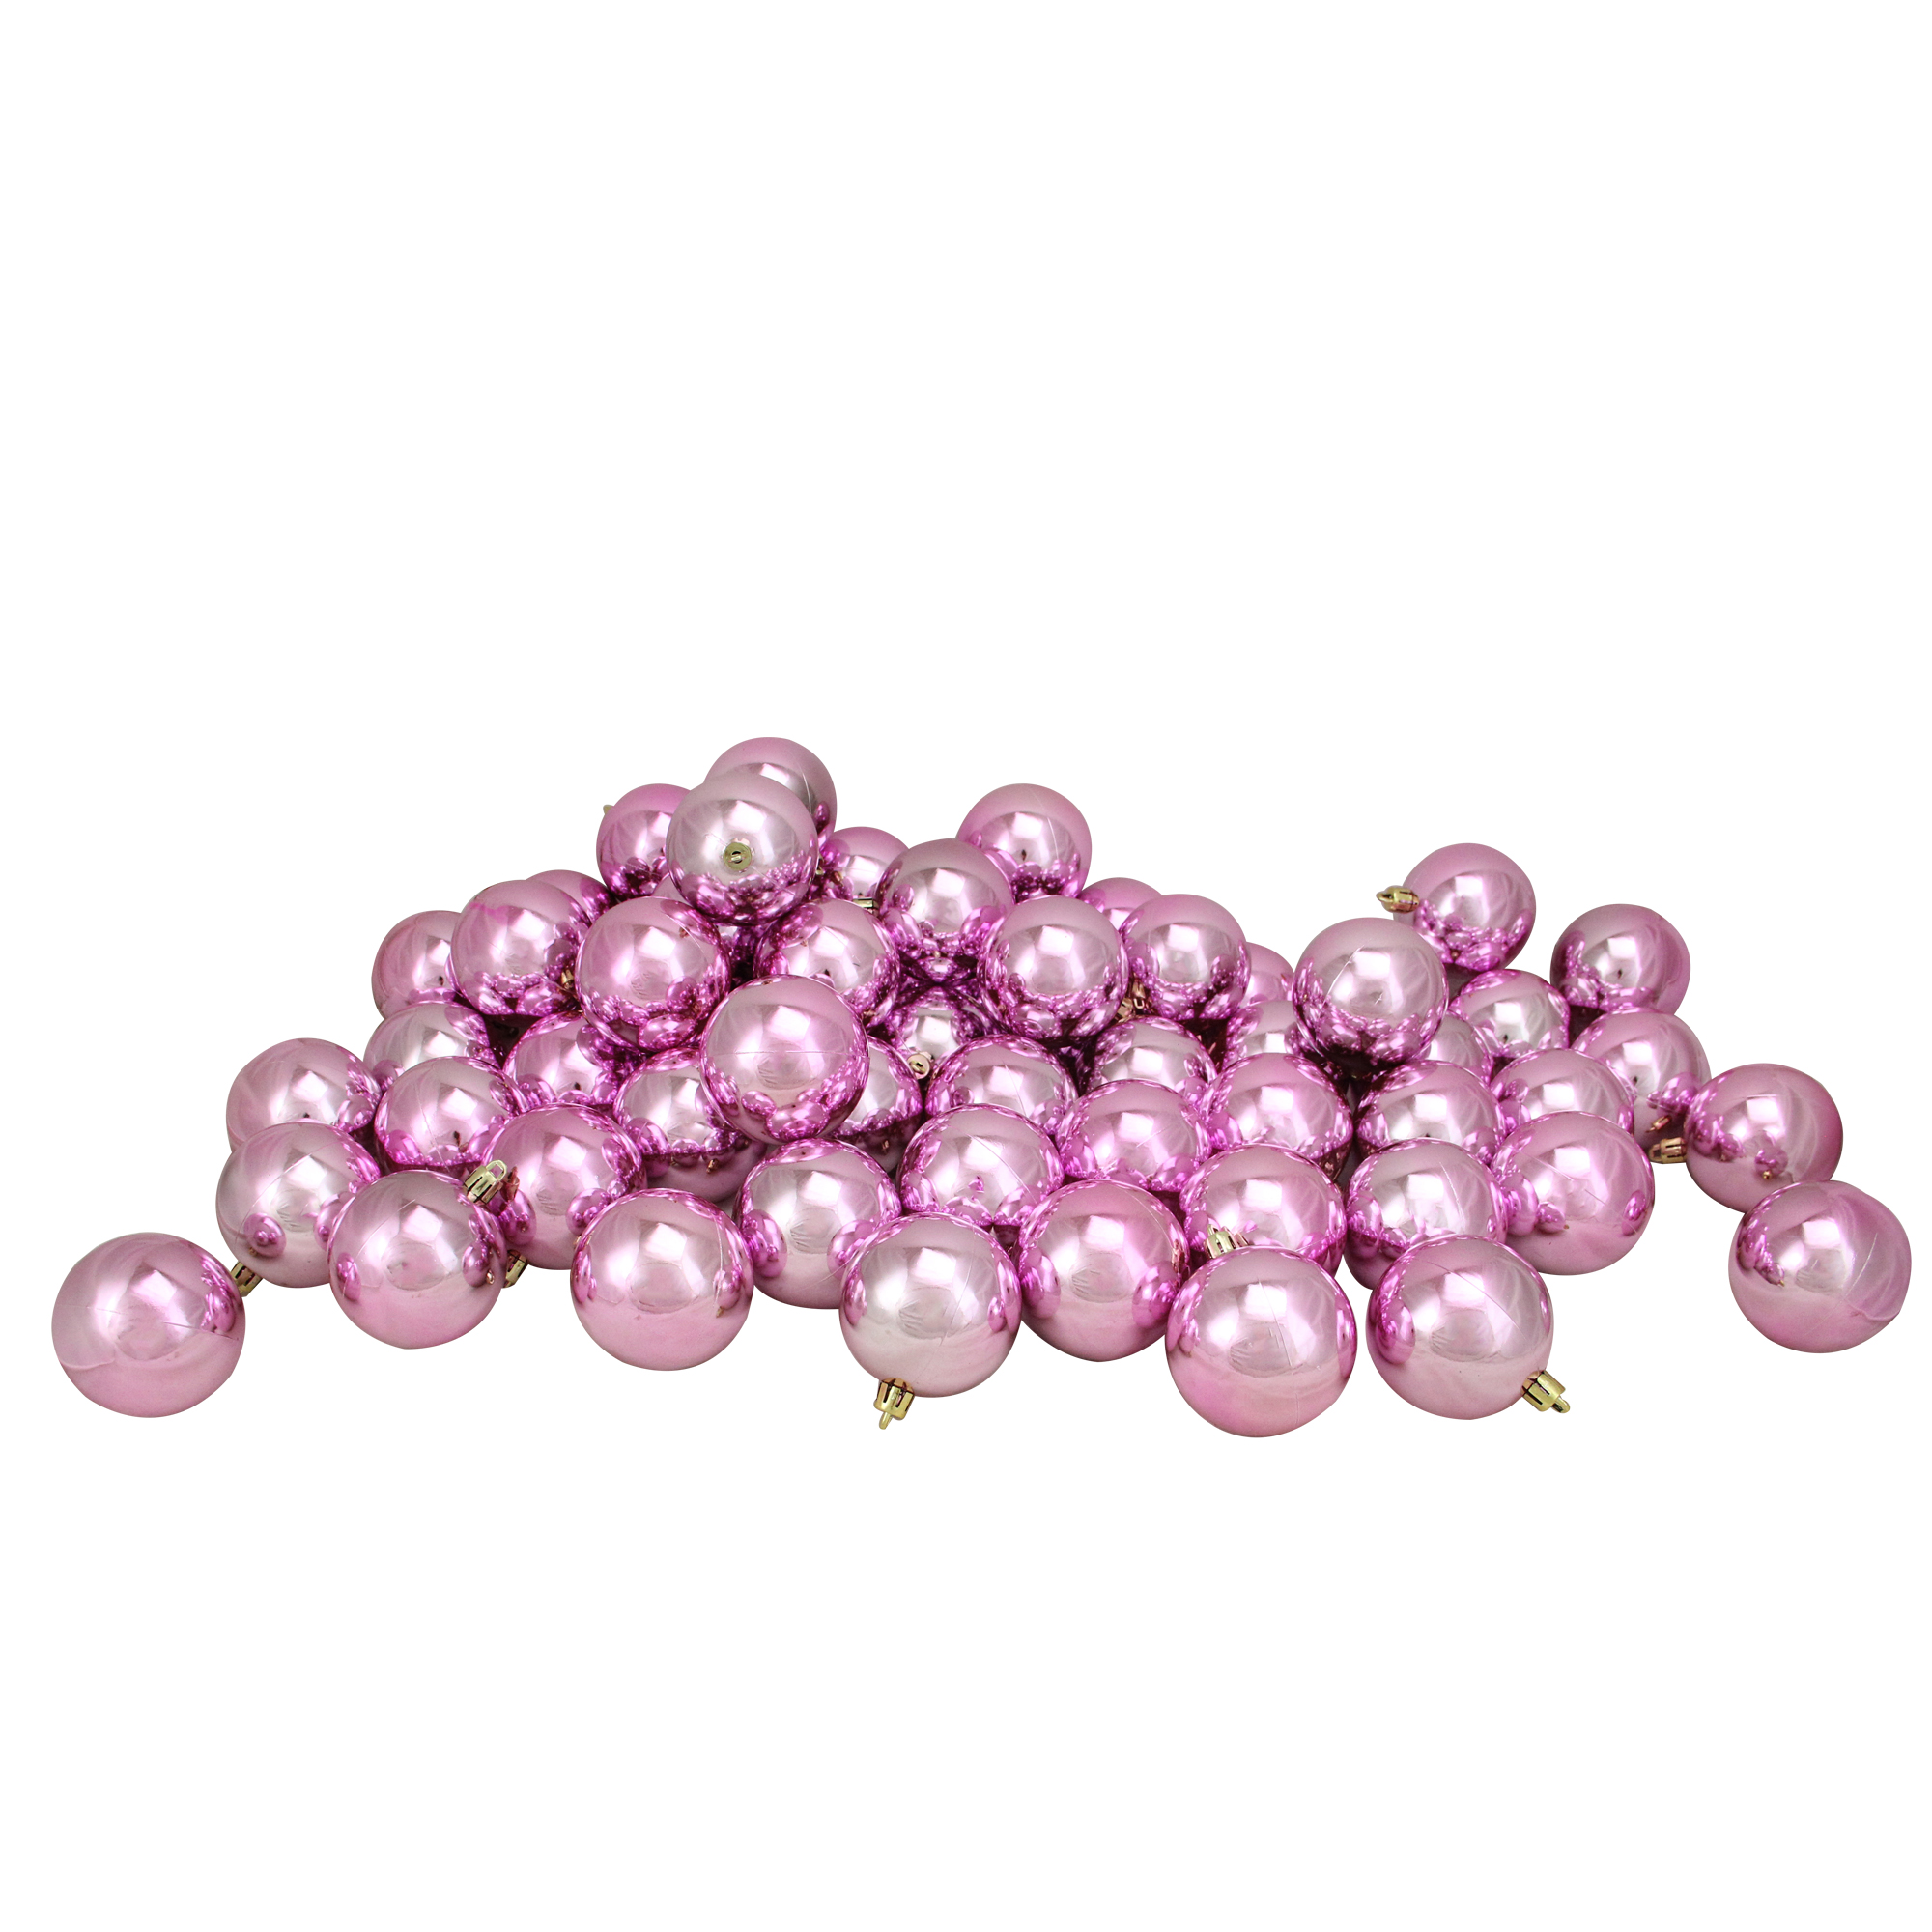 "60ct Bubblegum Pink Shatterproof Shiny Christmas Ball Ornaments 2.5"" (60mm)"